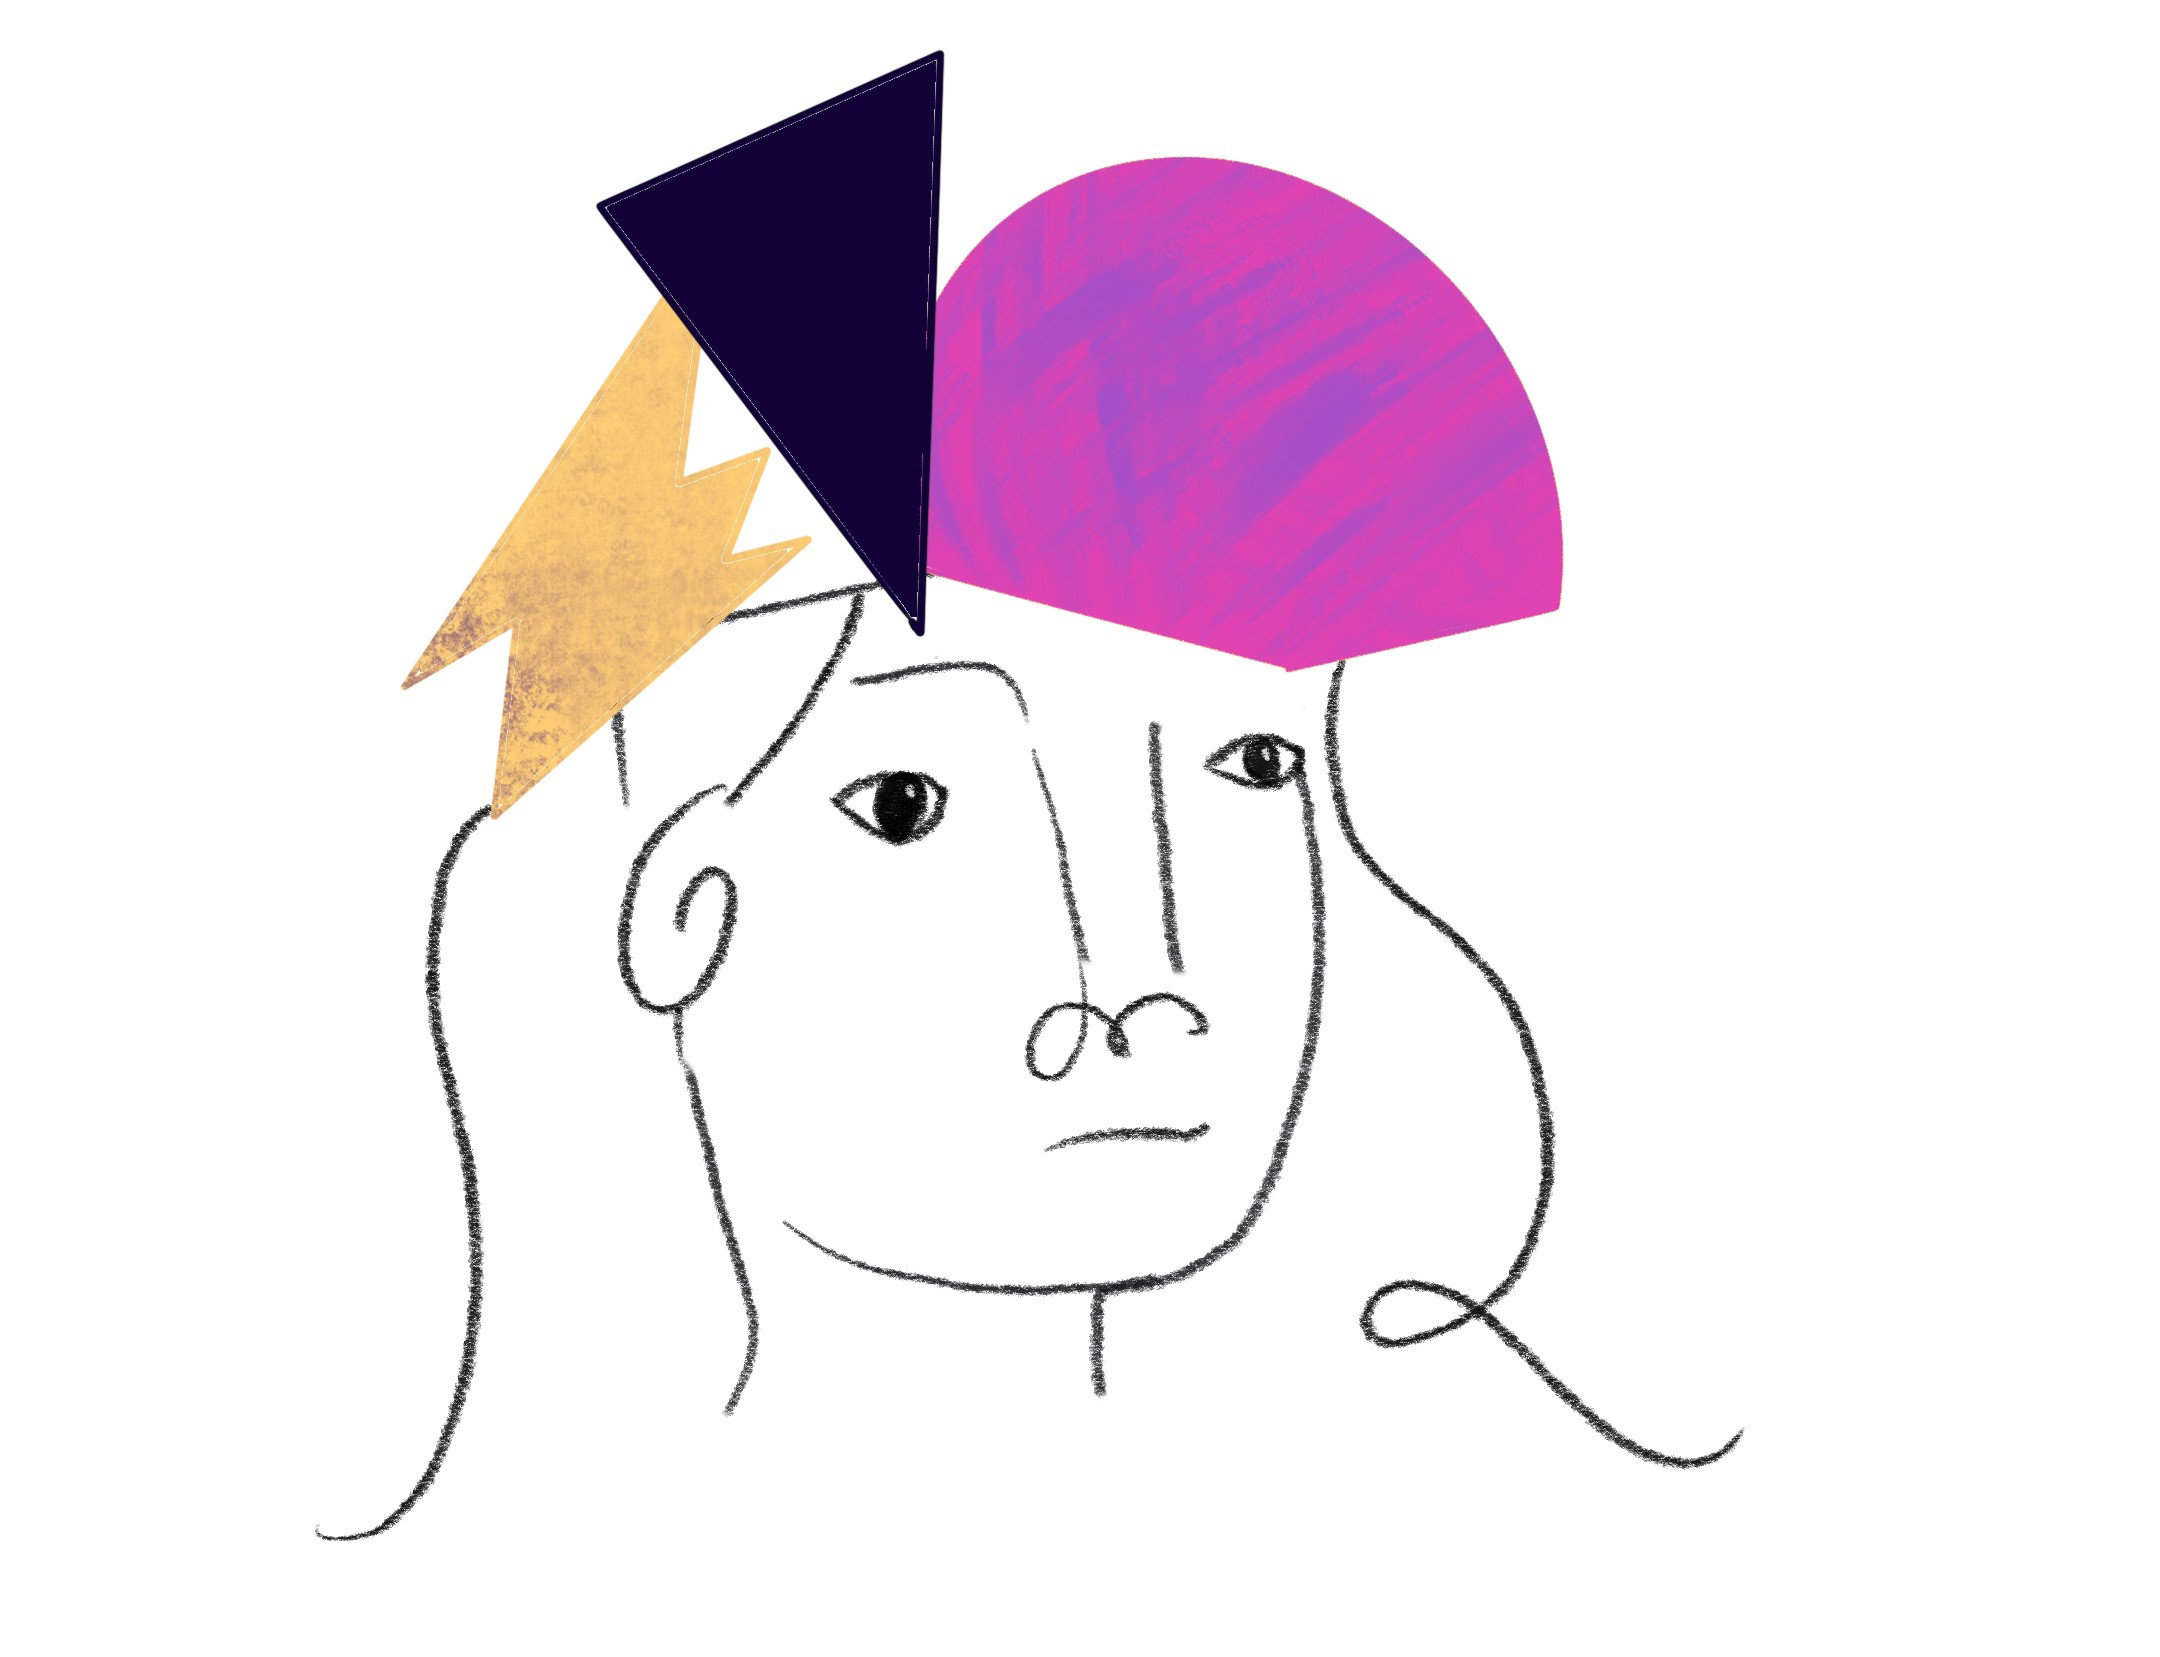 An abstract illustration of a women's face with a plain expression. Colorful objects float around the top of her head.